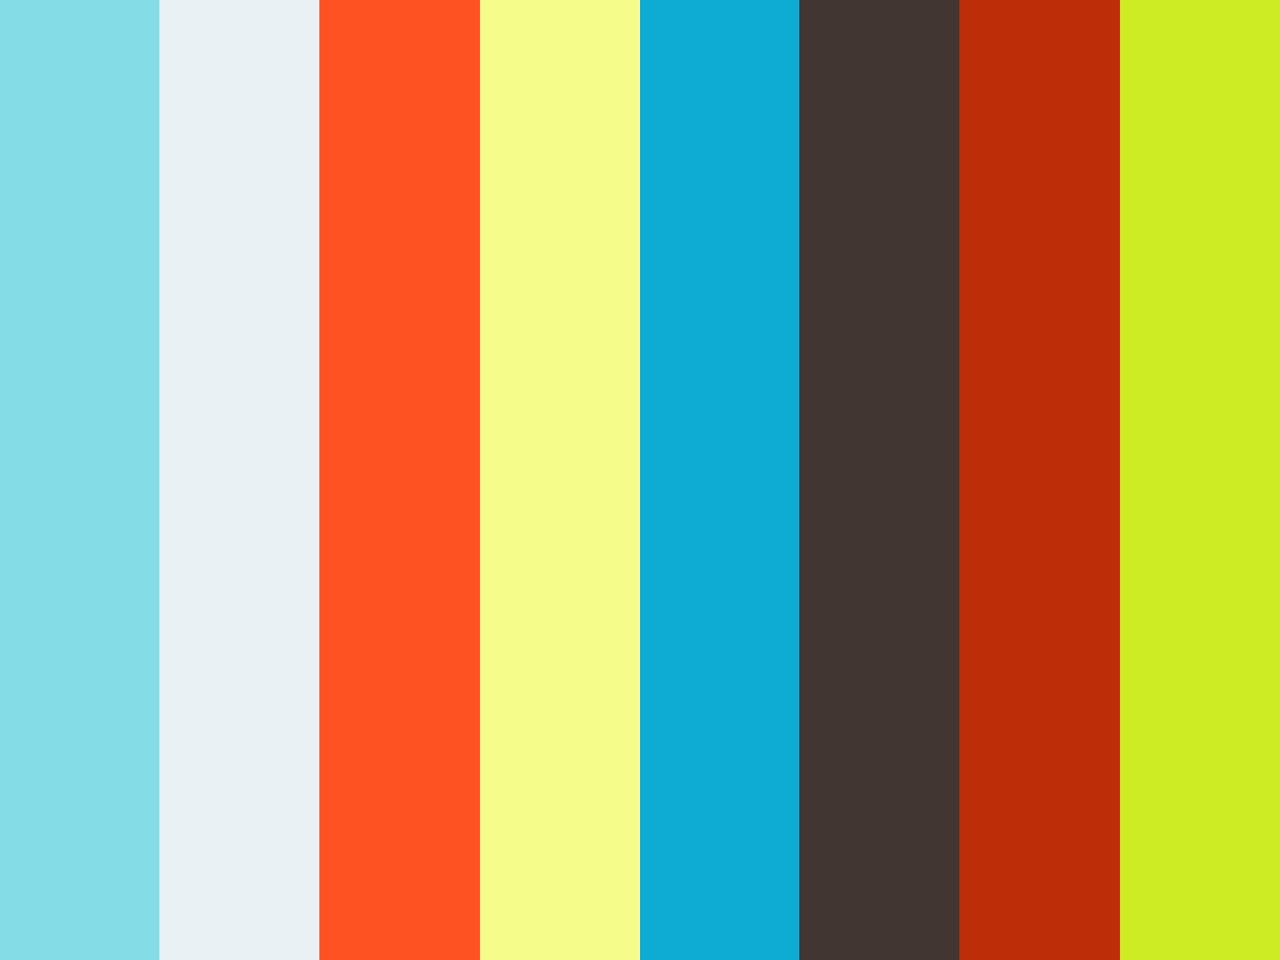 Erica Duct Taped to the Wall